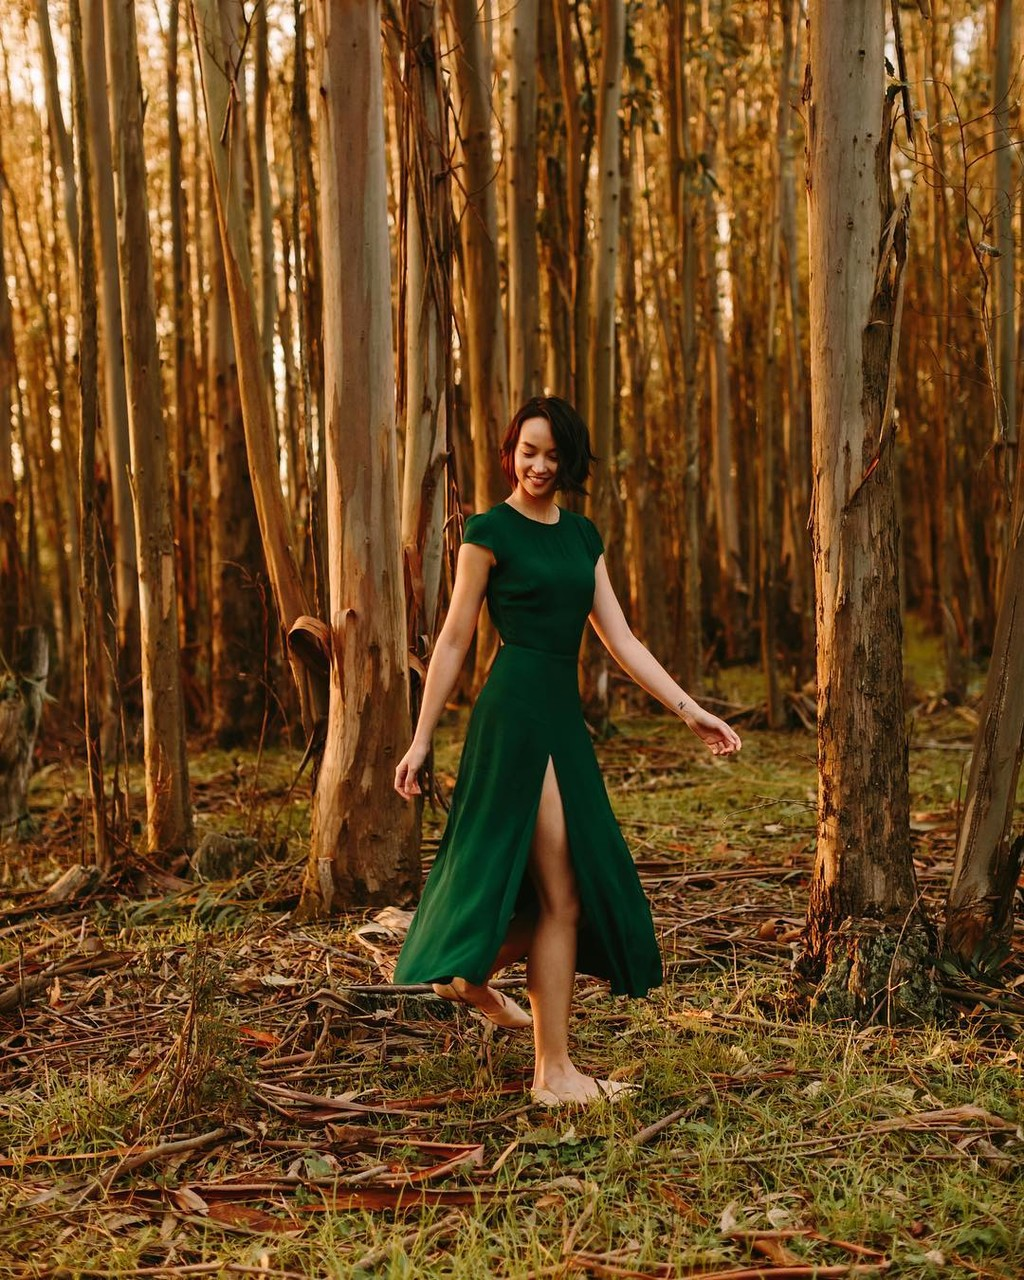 Katie dancing in the trees. #karenobristphotography